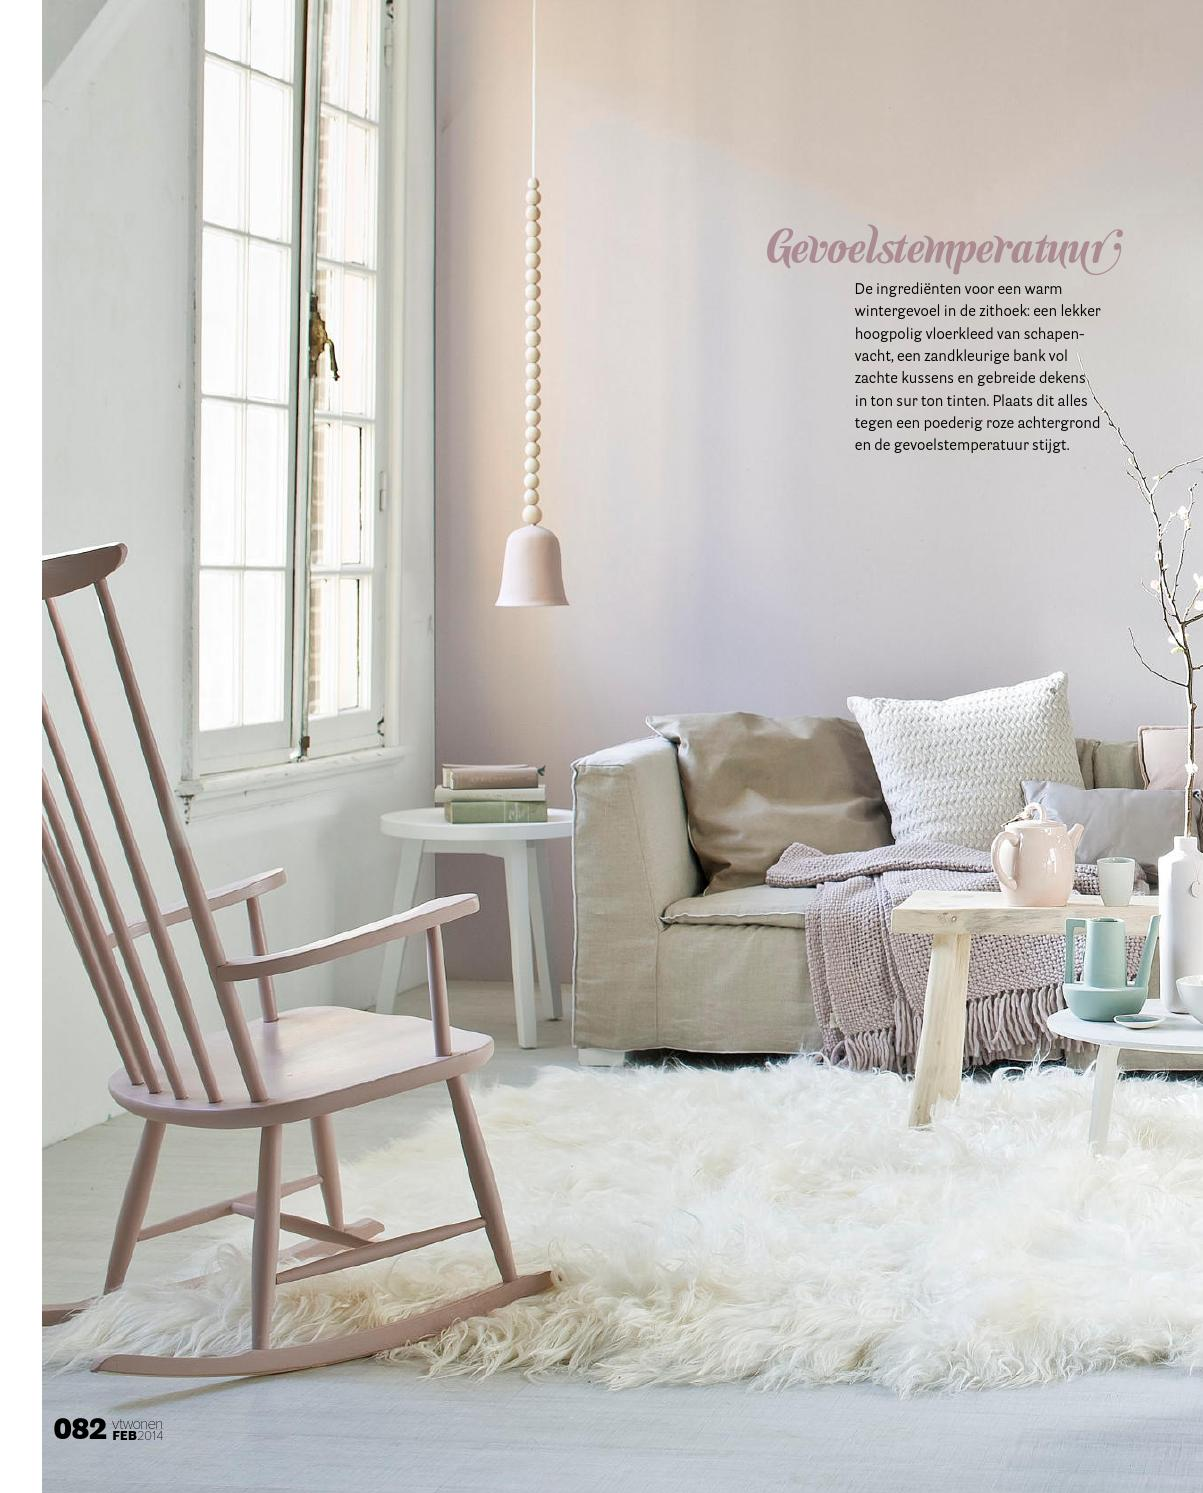 Diy Vtwonen Bank Vtwonen Bladerboekje 02 By Home Deco Sanoma Issuu